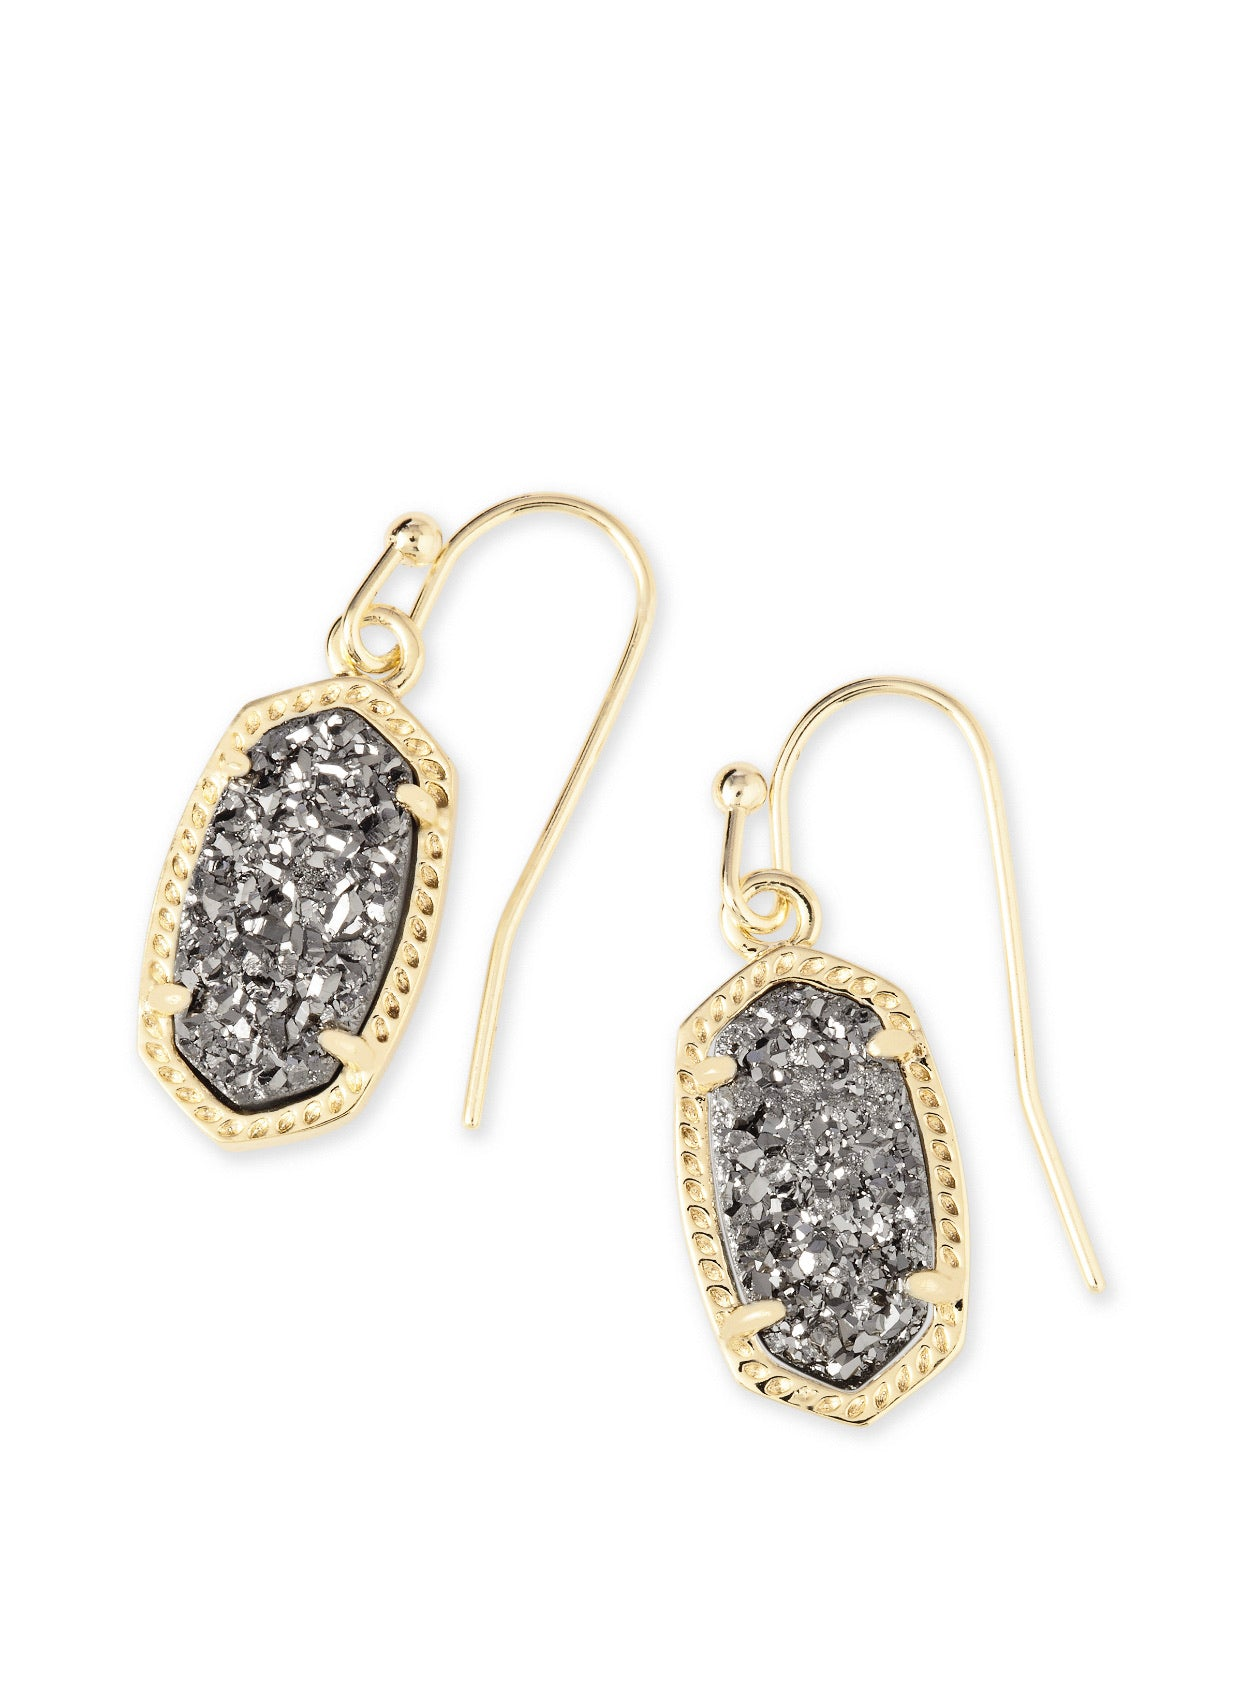 LEE EARRING Gold Platinum Drusy